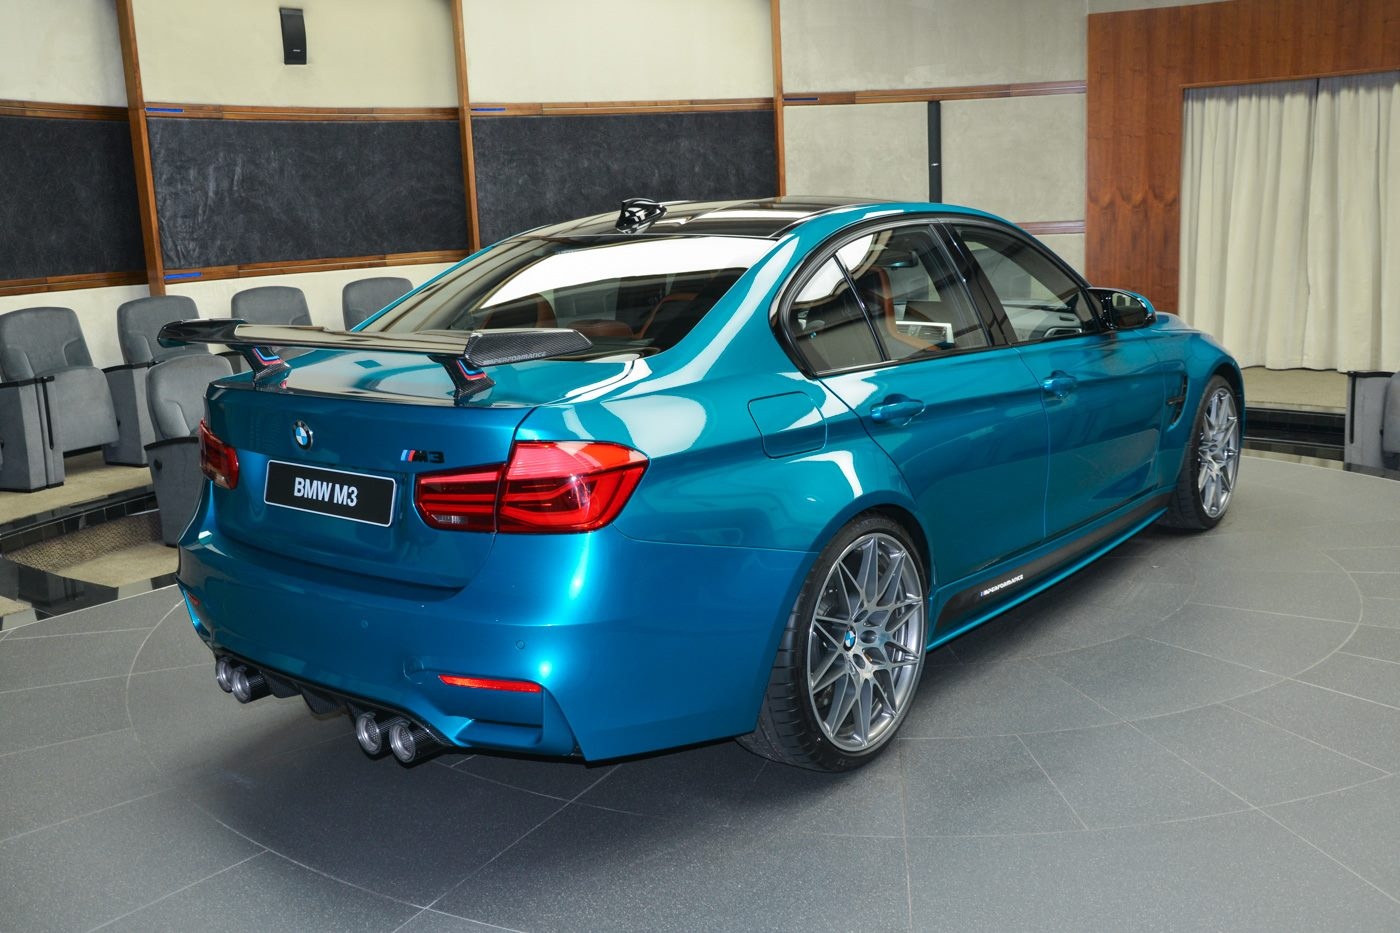 Atlantis Blue Bmw M3 Looks Astonishing With M Performance Goodies